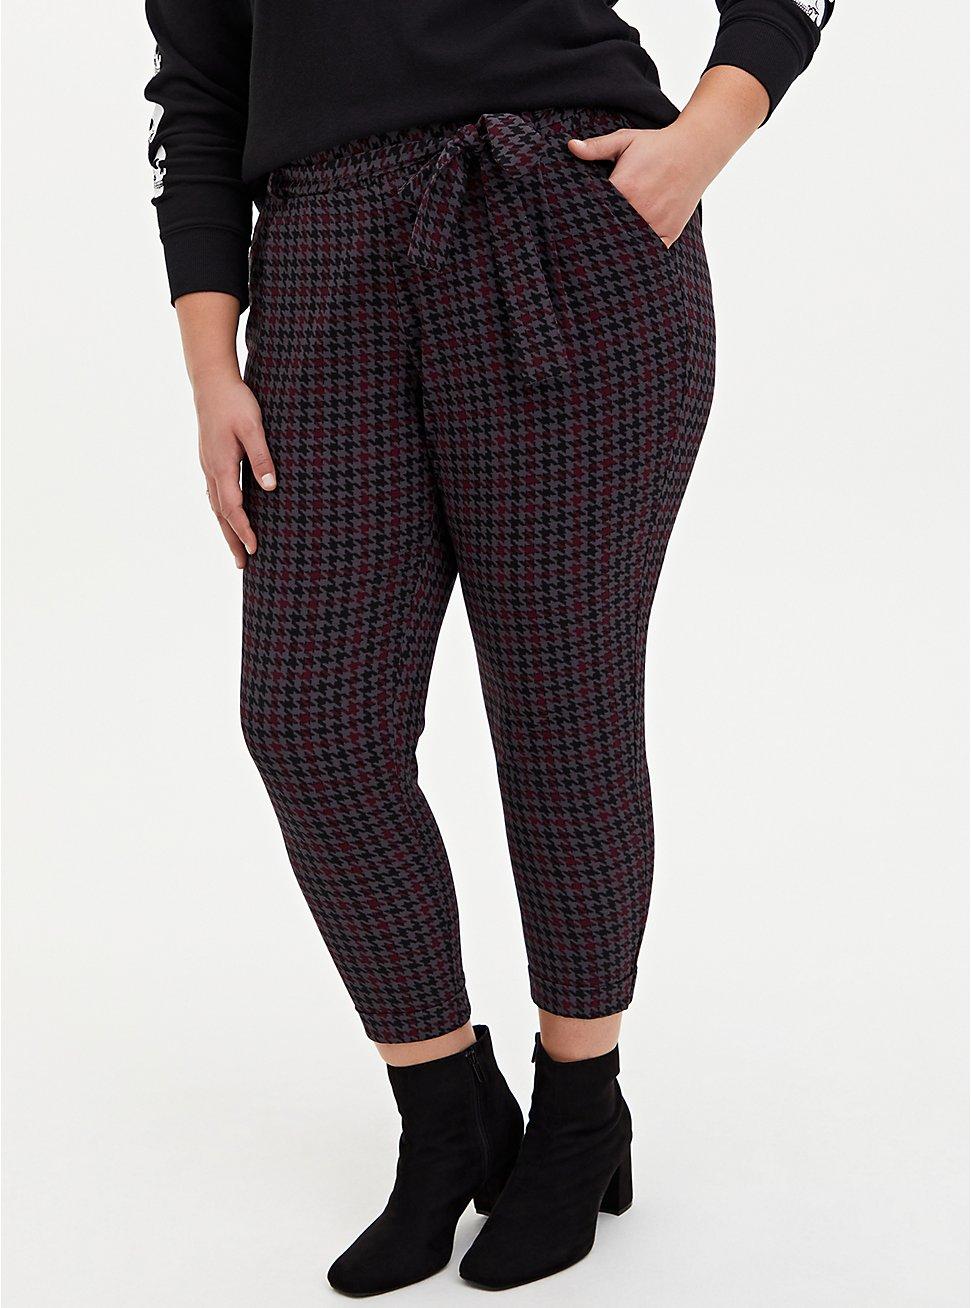 Plus Size Multi Houndstooth Crepe Self-Tie Tapered Pant , PLAID, hi-res